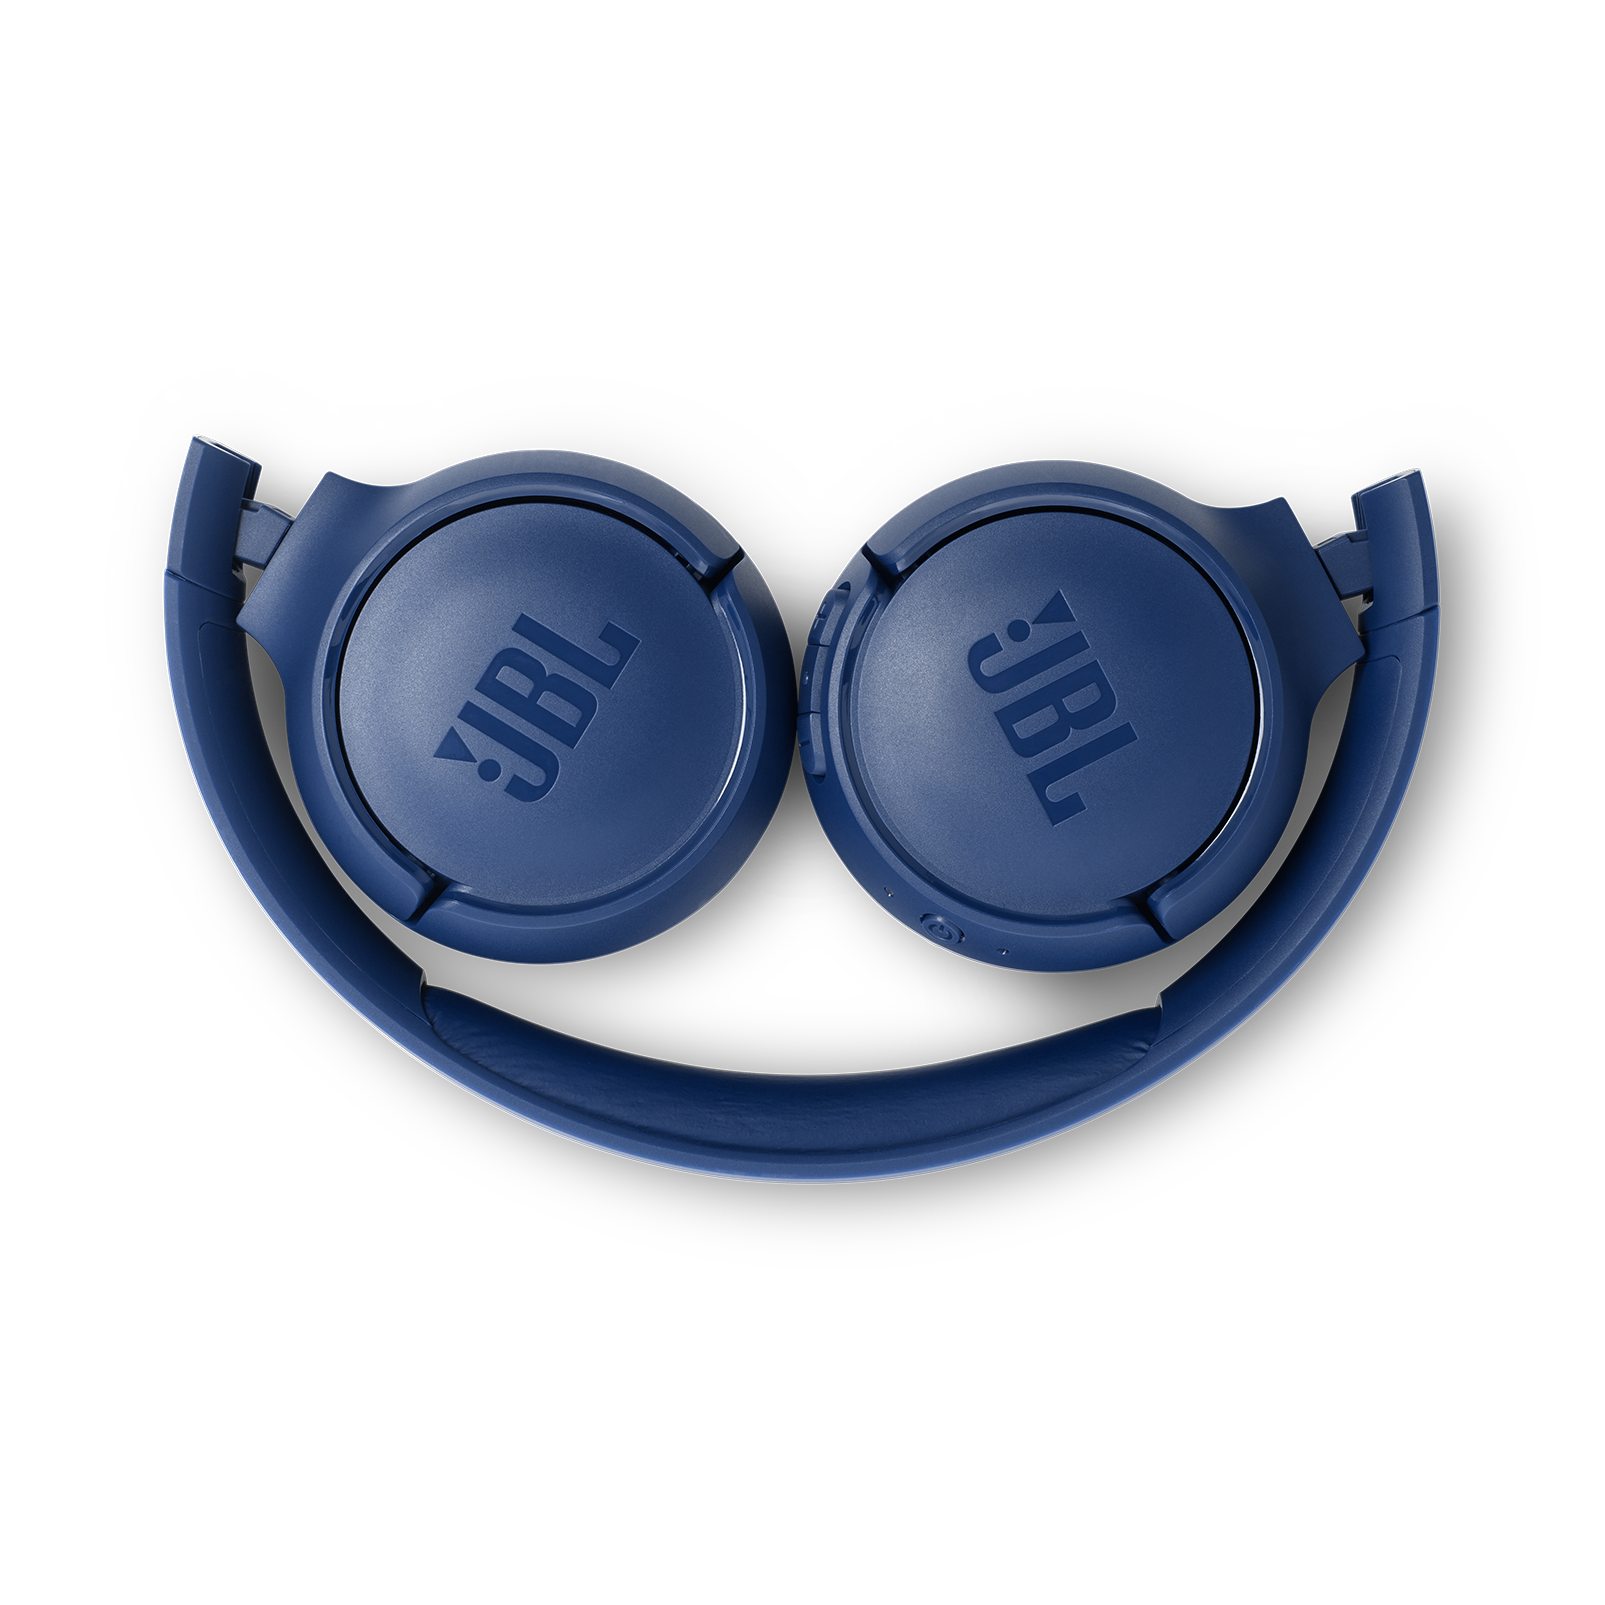 JBL TUNE 500BT - Blue - Wireless on-ear headphones - Detailshot 3